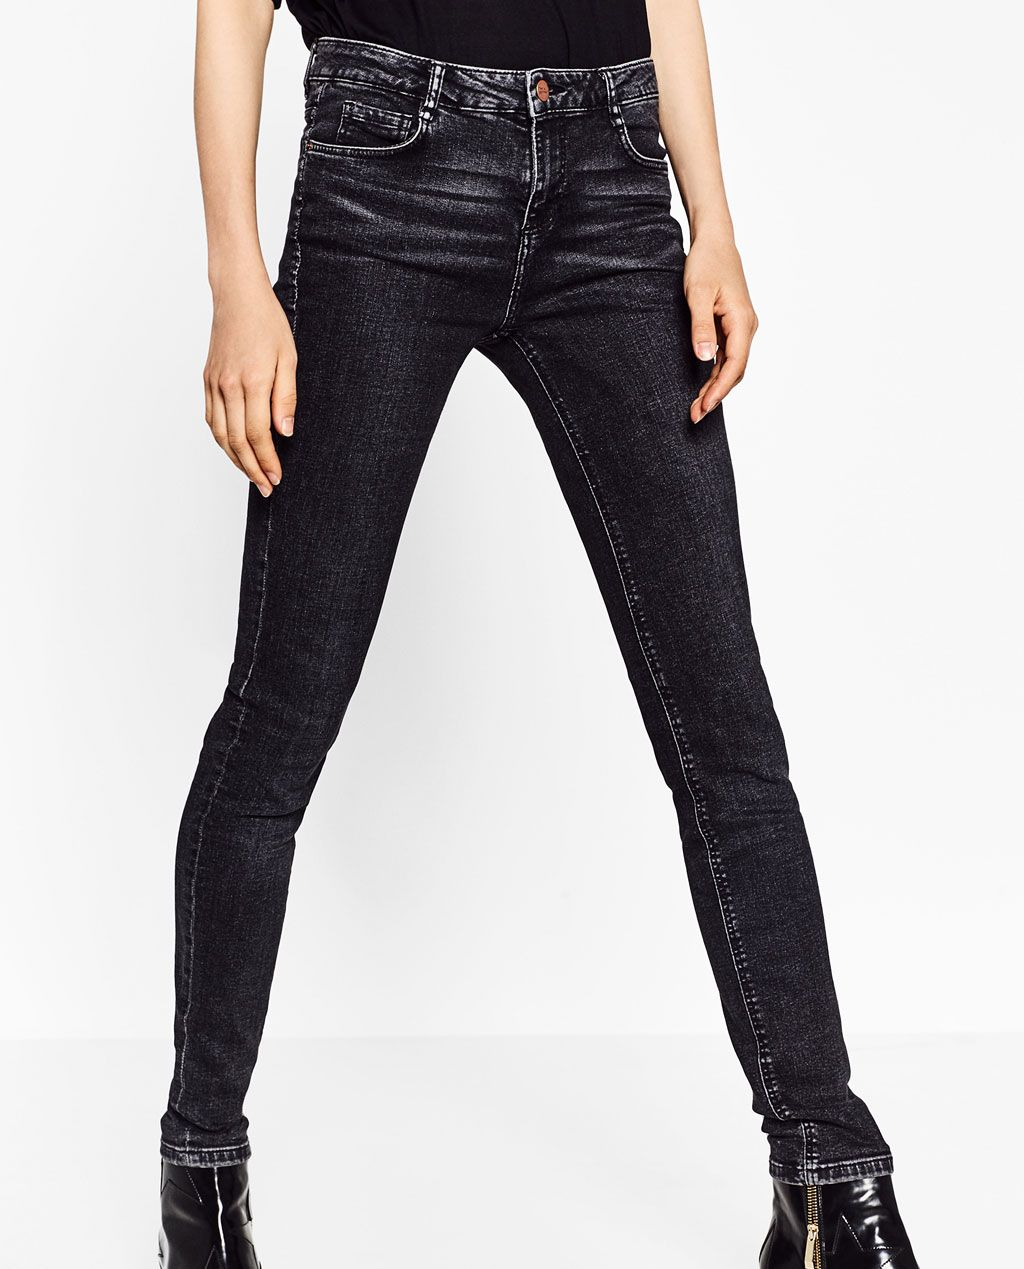 Immagine 2 di PANTALONI DENIM ESSENTIAL FITS di Zara